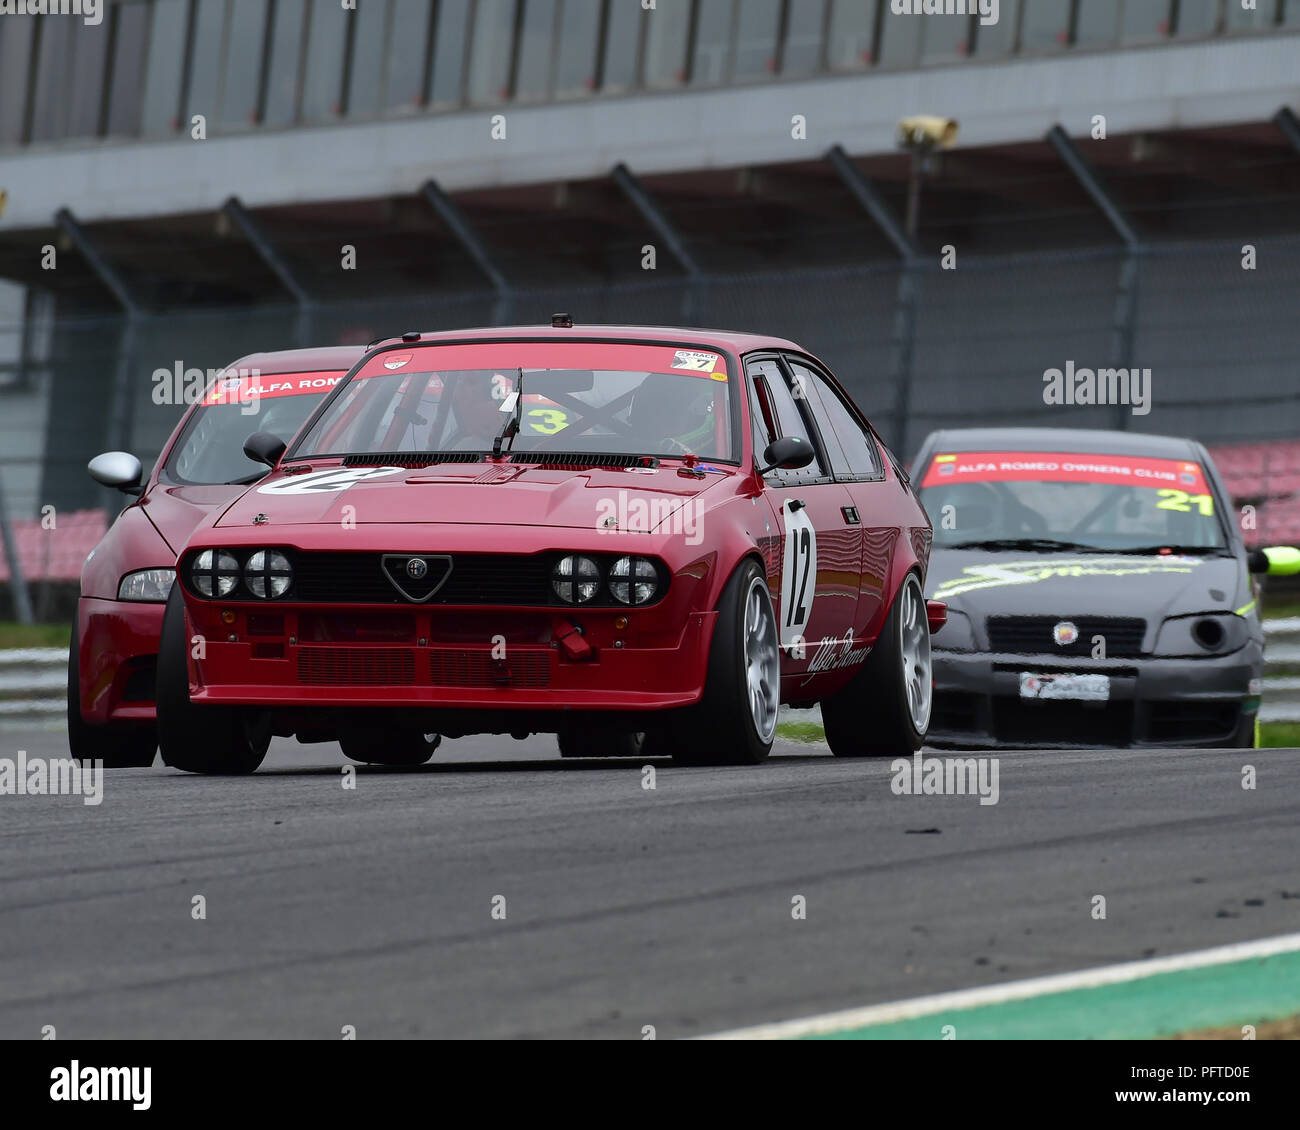 Alfa Romeo Gtv6 Stock Photos & Alfa Romeo Gtv6 Stock